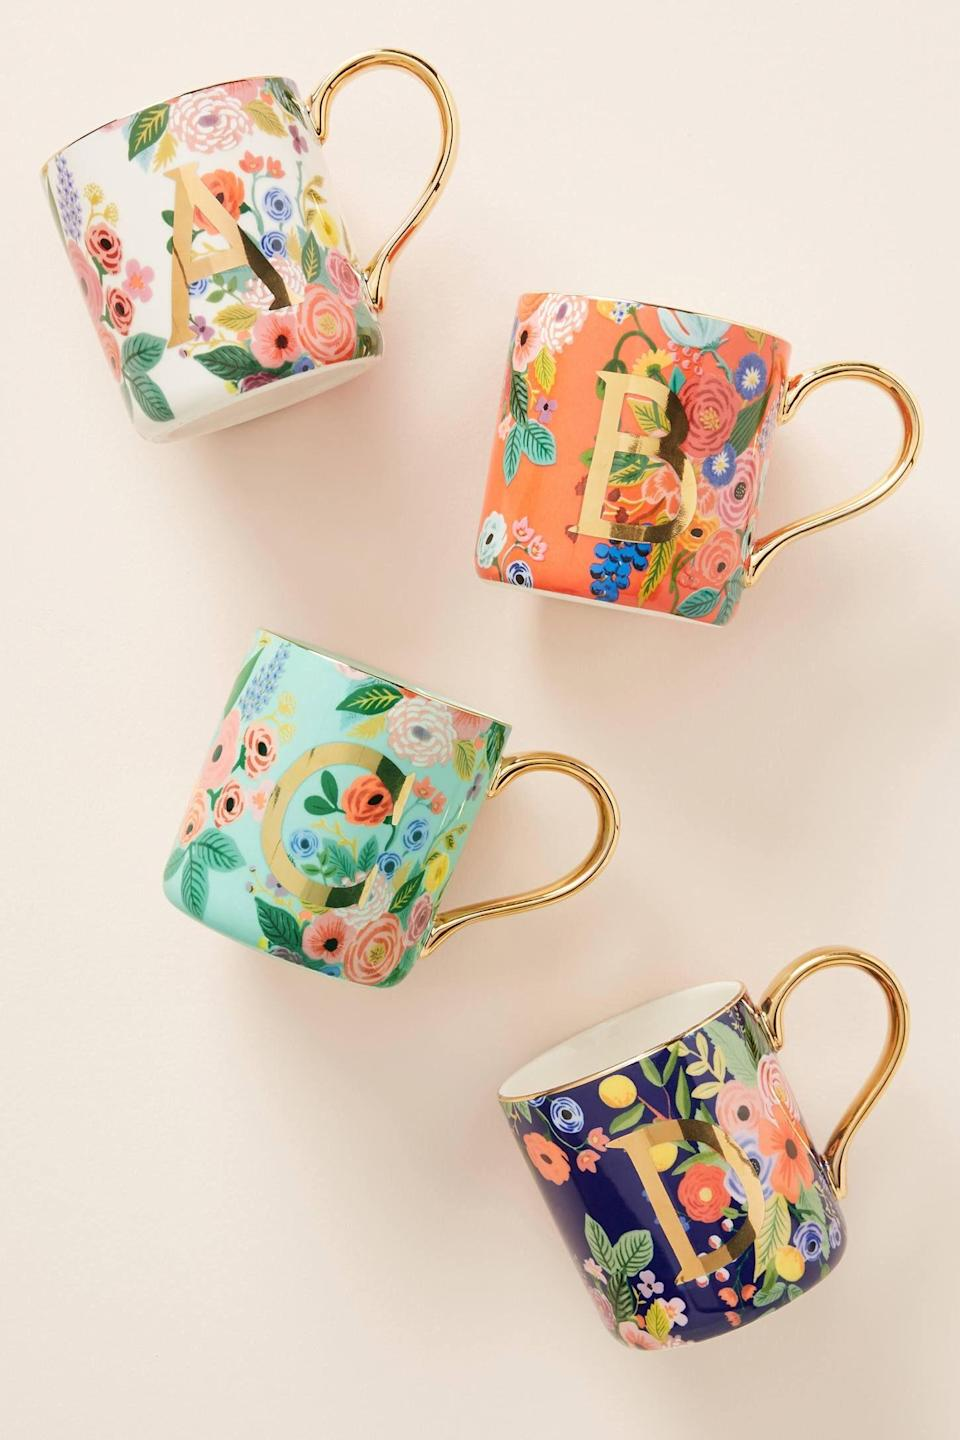 """<p><strong>Rifle Paper Co.</strong></p><p>anthropologie.com</p><p><strong>$14.00</strong></p><p><a href=""""https://go.redirectingat.com?id=74968X1596630&url=https%3A%2F%2Fwww.anthropologie.com%2Fshop%2Frifle-paper-co-for-anthropologie-garden-party-monogram-mug&sref=https%3A%2F%2Fwww.housebeautiful.com%2Fshopping%2Fg498%2Fbest-stocking-stuffers%2F"""" rel=""""nofollow noopener"""" target=""""_blank"""" data-ylk=""""slk:BUY NOW"""" class=""""link rapid-noclick-resp"""">BUY NOW</a></p><p>You can't go wrong with a mug, especially one this pretty with their monogram on it. </p>"""